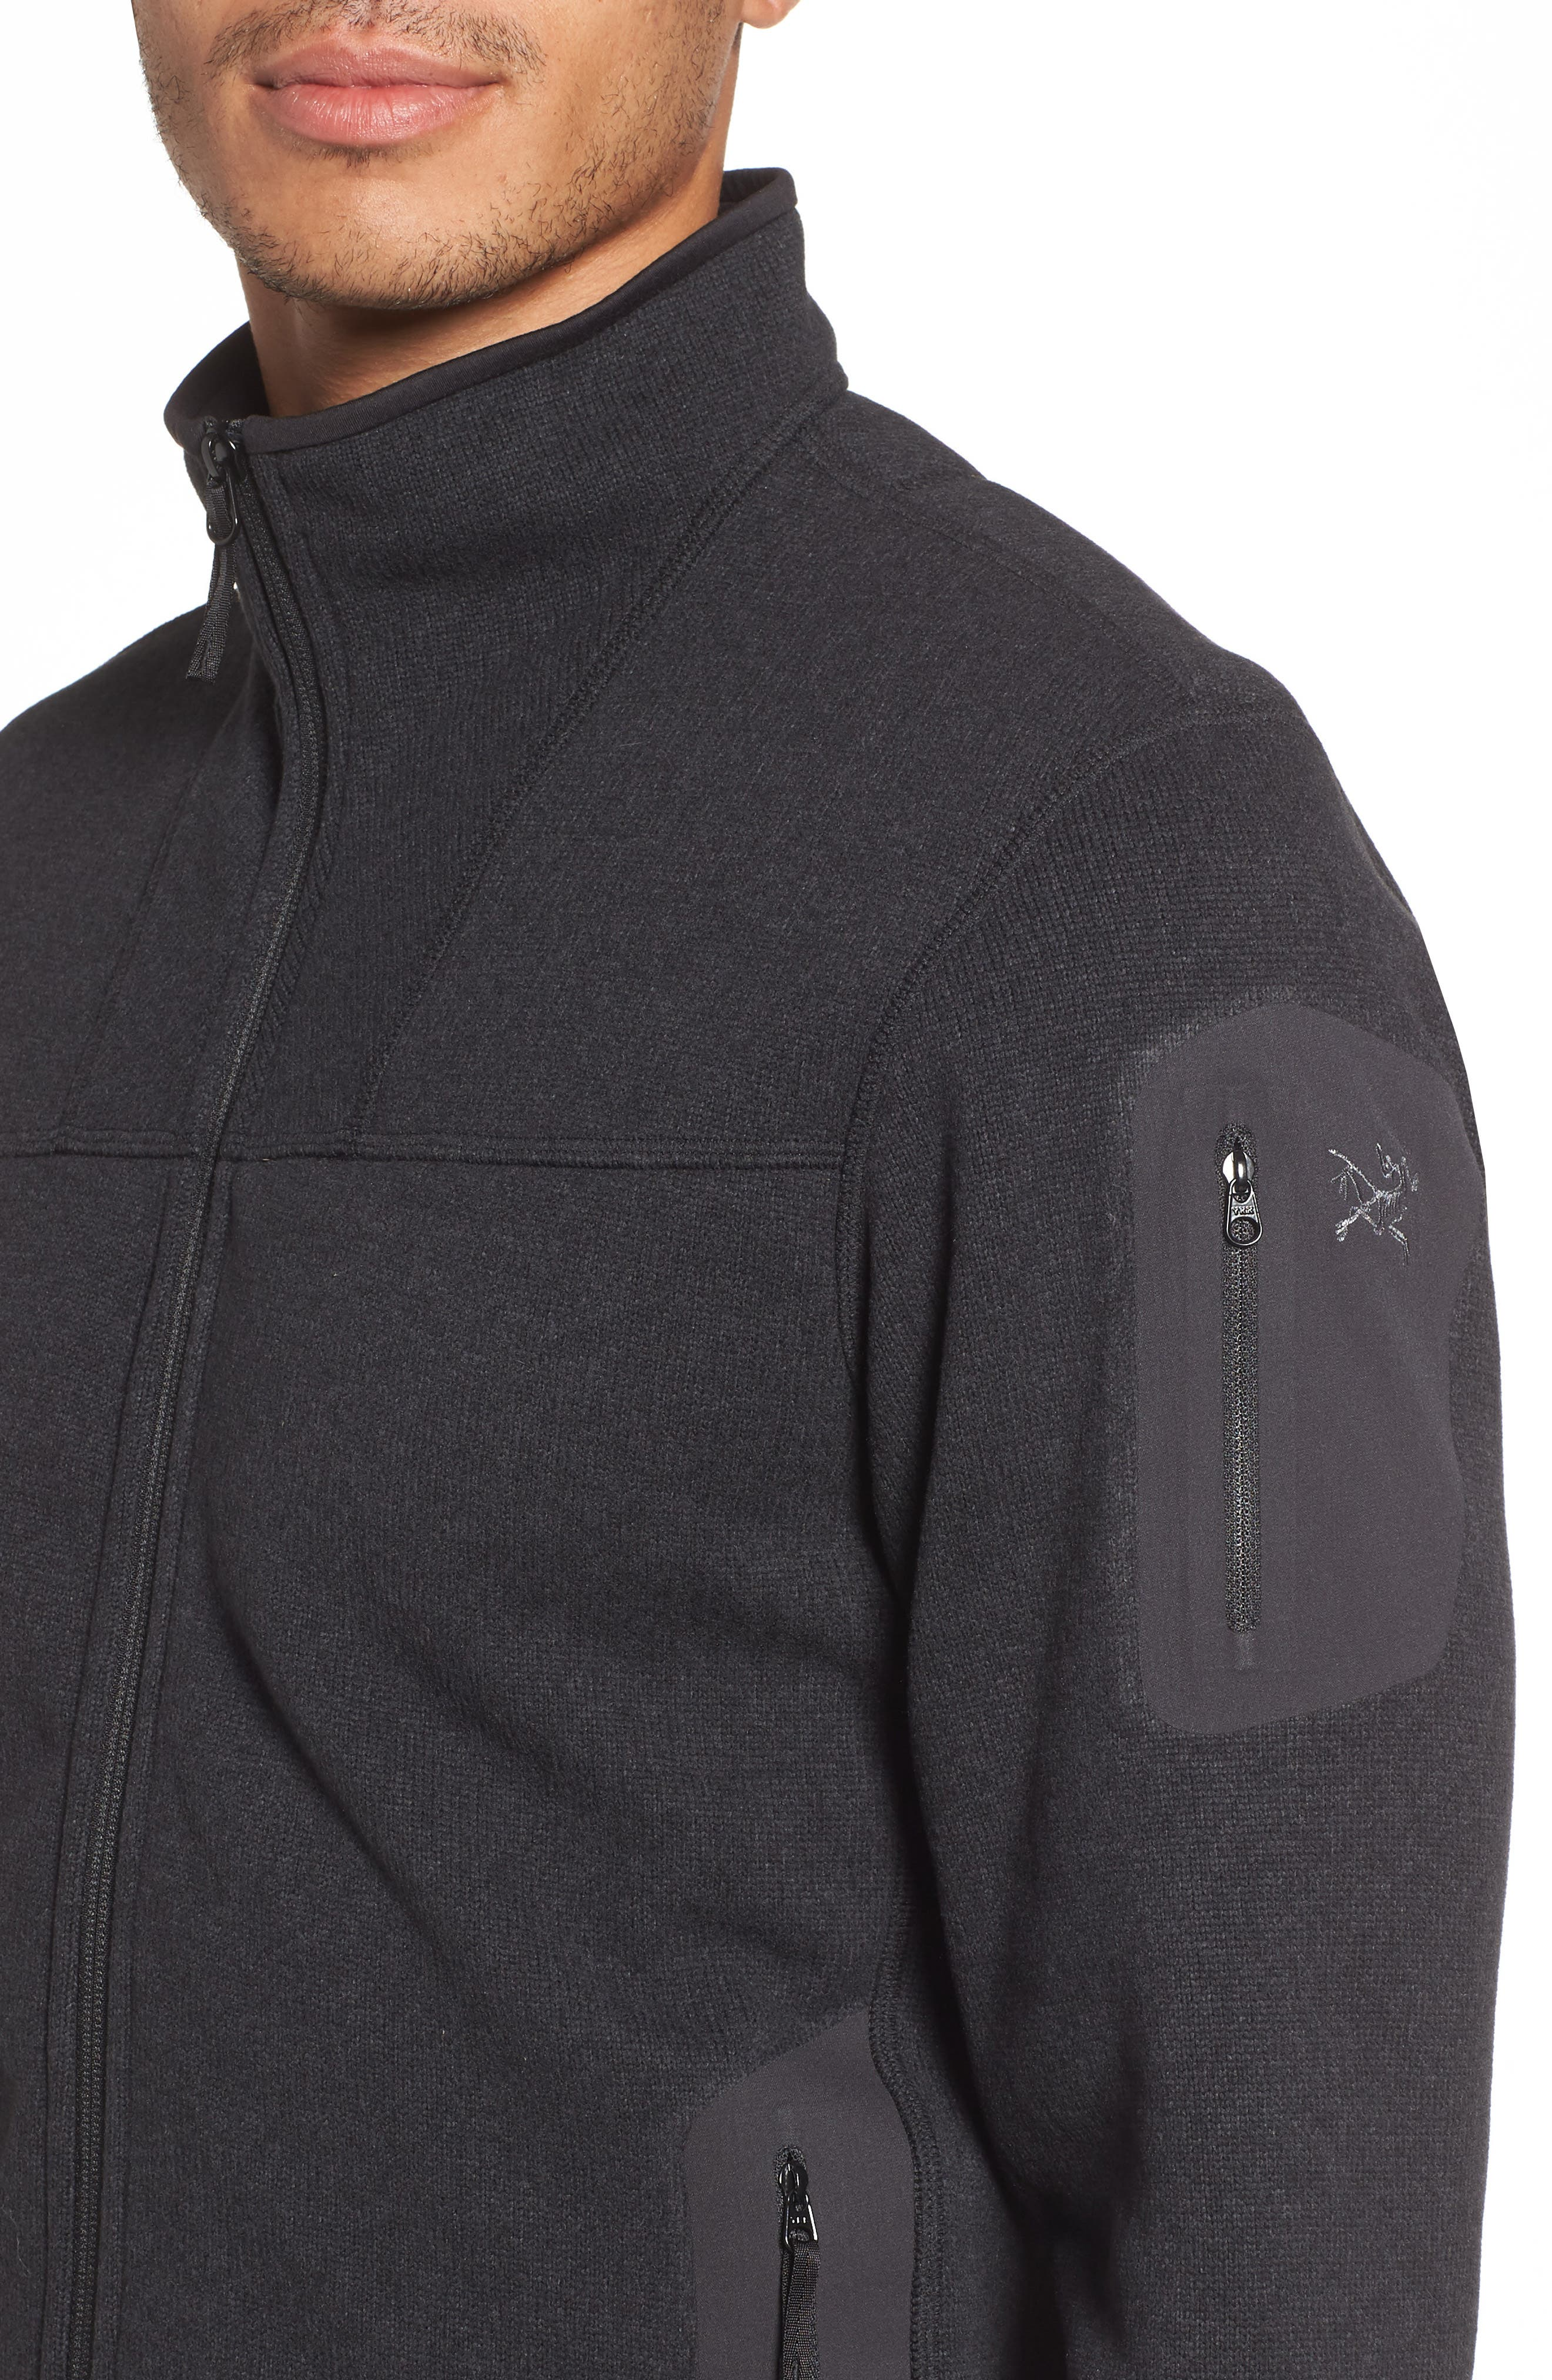 'Covert' Relaxed Fit Technical Fleece Zip Jacket,                             Alternate thumbnail 4, color,                             BLACK HEATHER